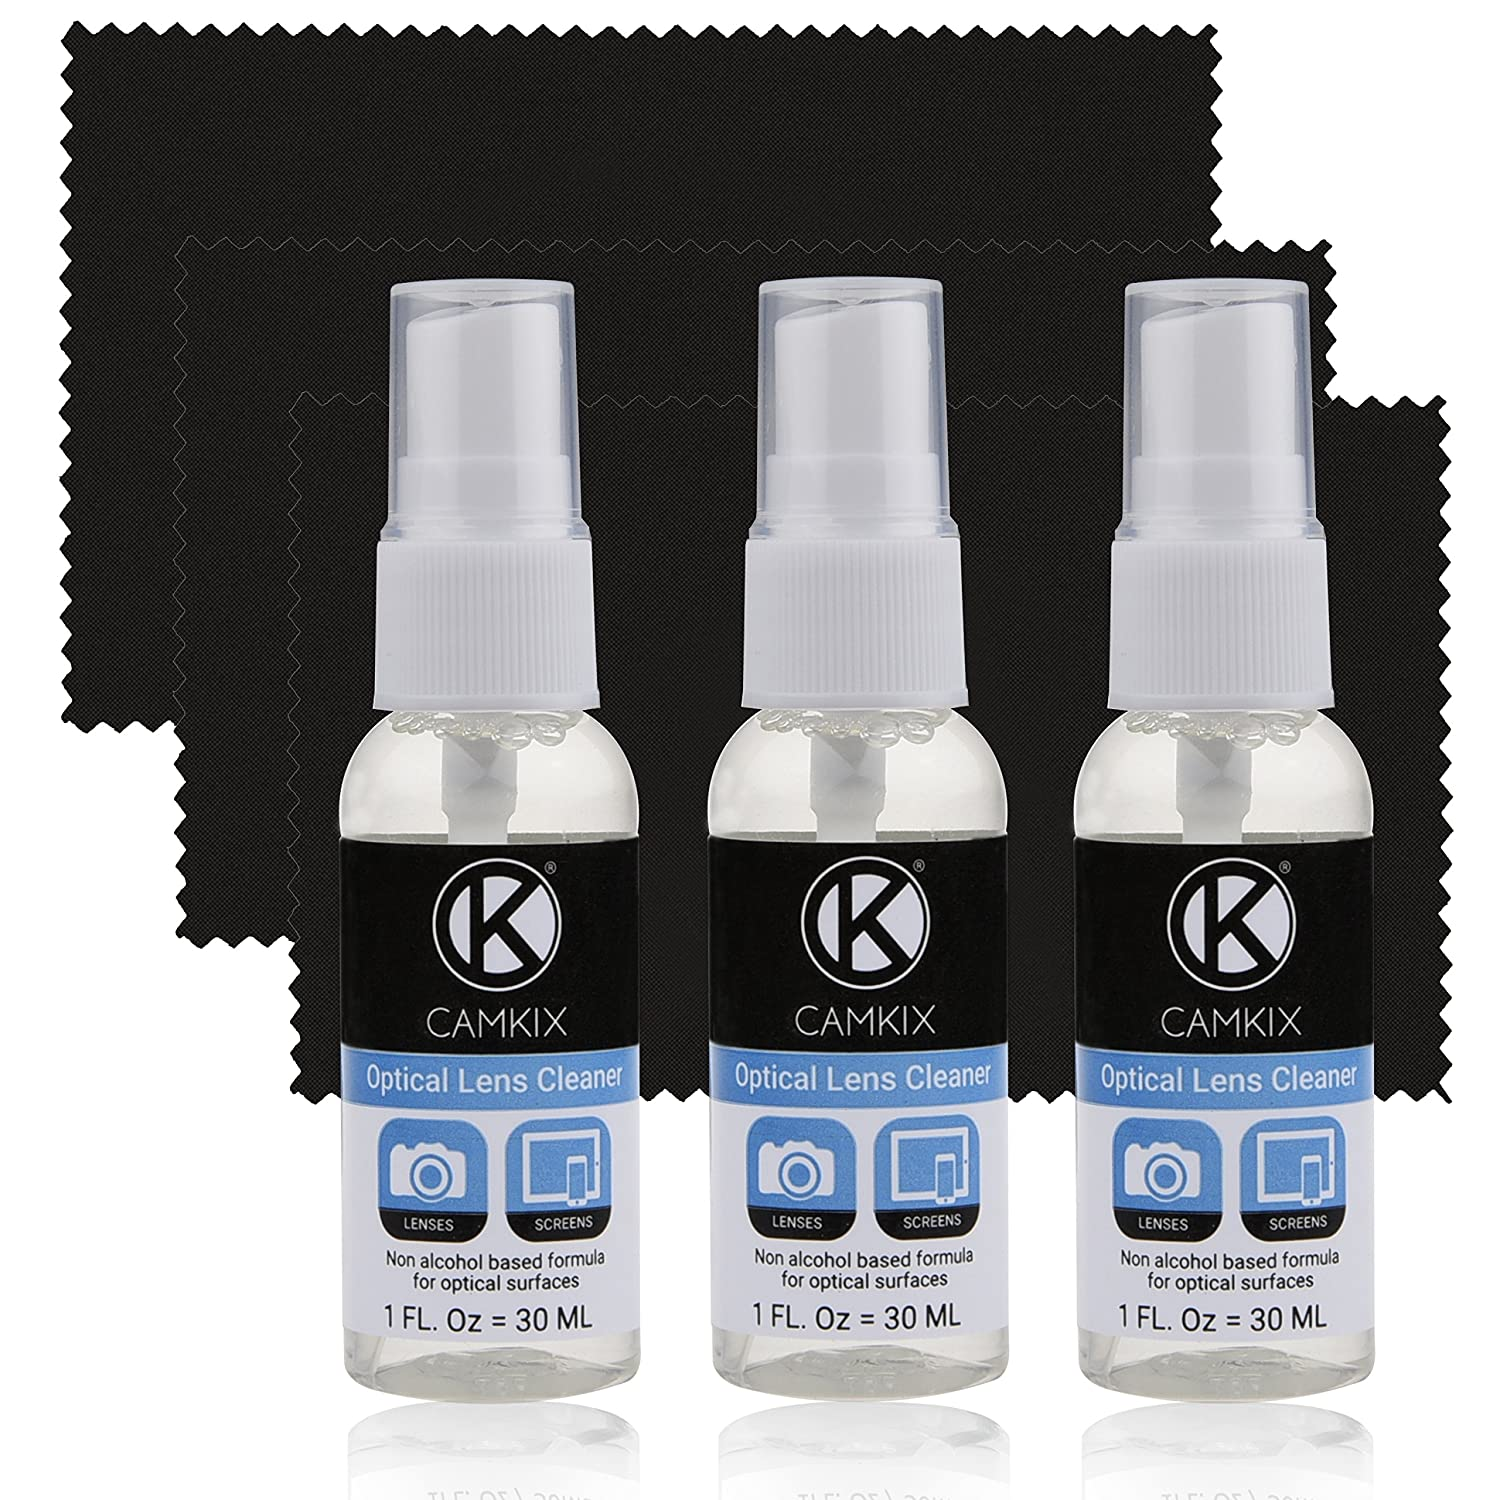 Camkix Lens and Screen Cleaning Kit - cleaning spray, microfiber cloth - Perfect to clean the lens of your DSLR or GoPro camera - Also great for your smartphone, tablet, notebook, etc. (3 PACK (3x 1 oz / 30 ml)) D0036-LCS-3PC